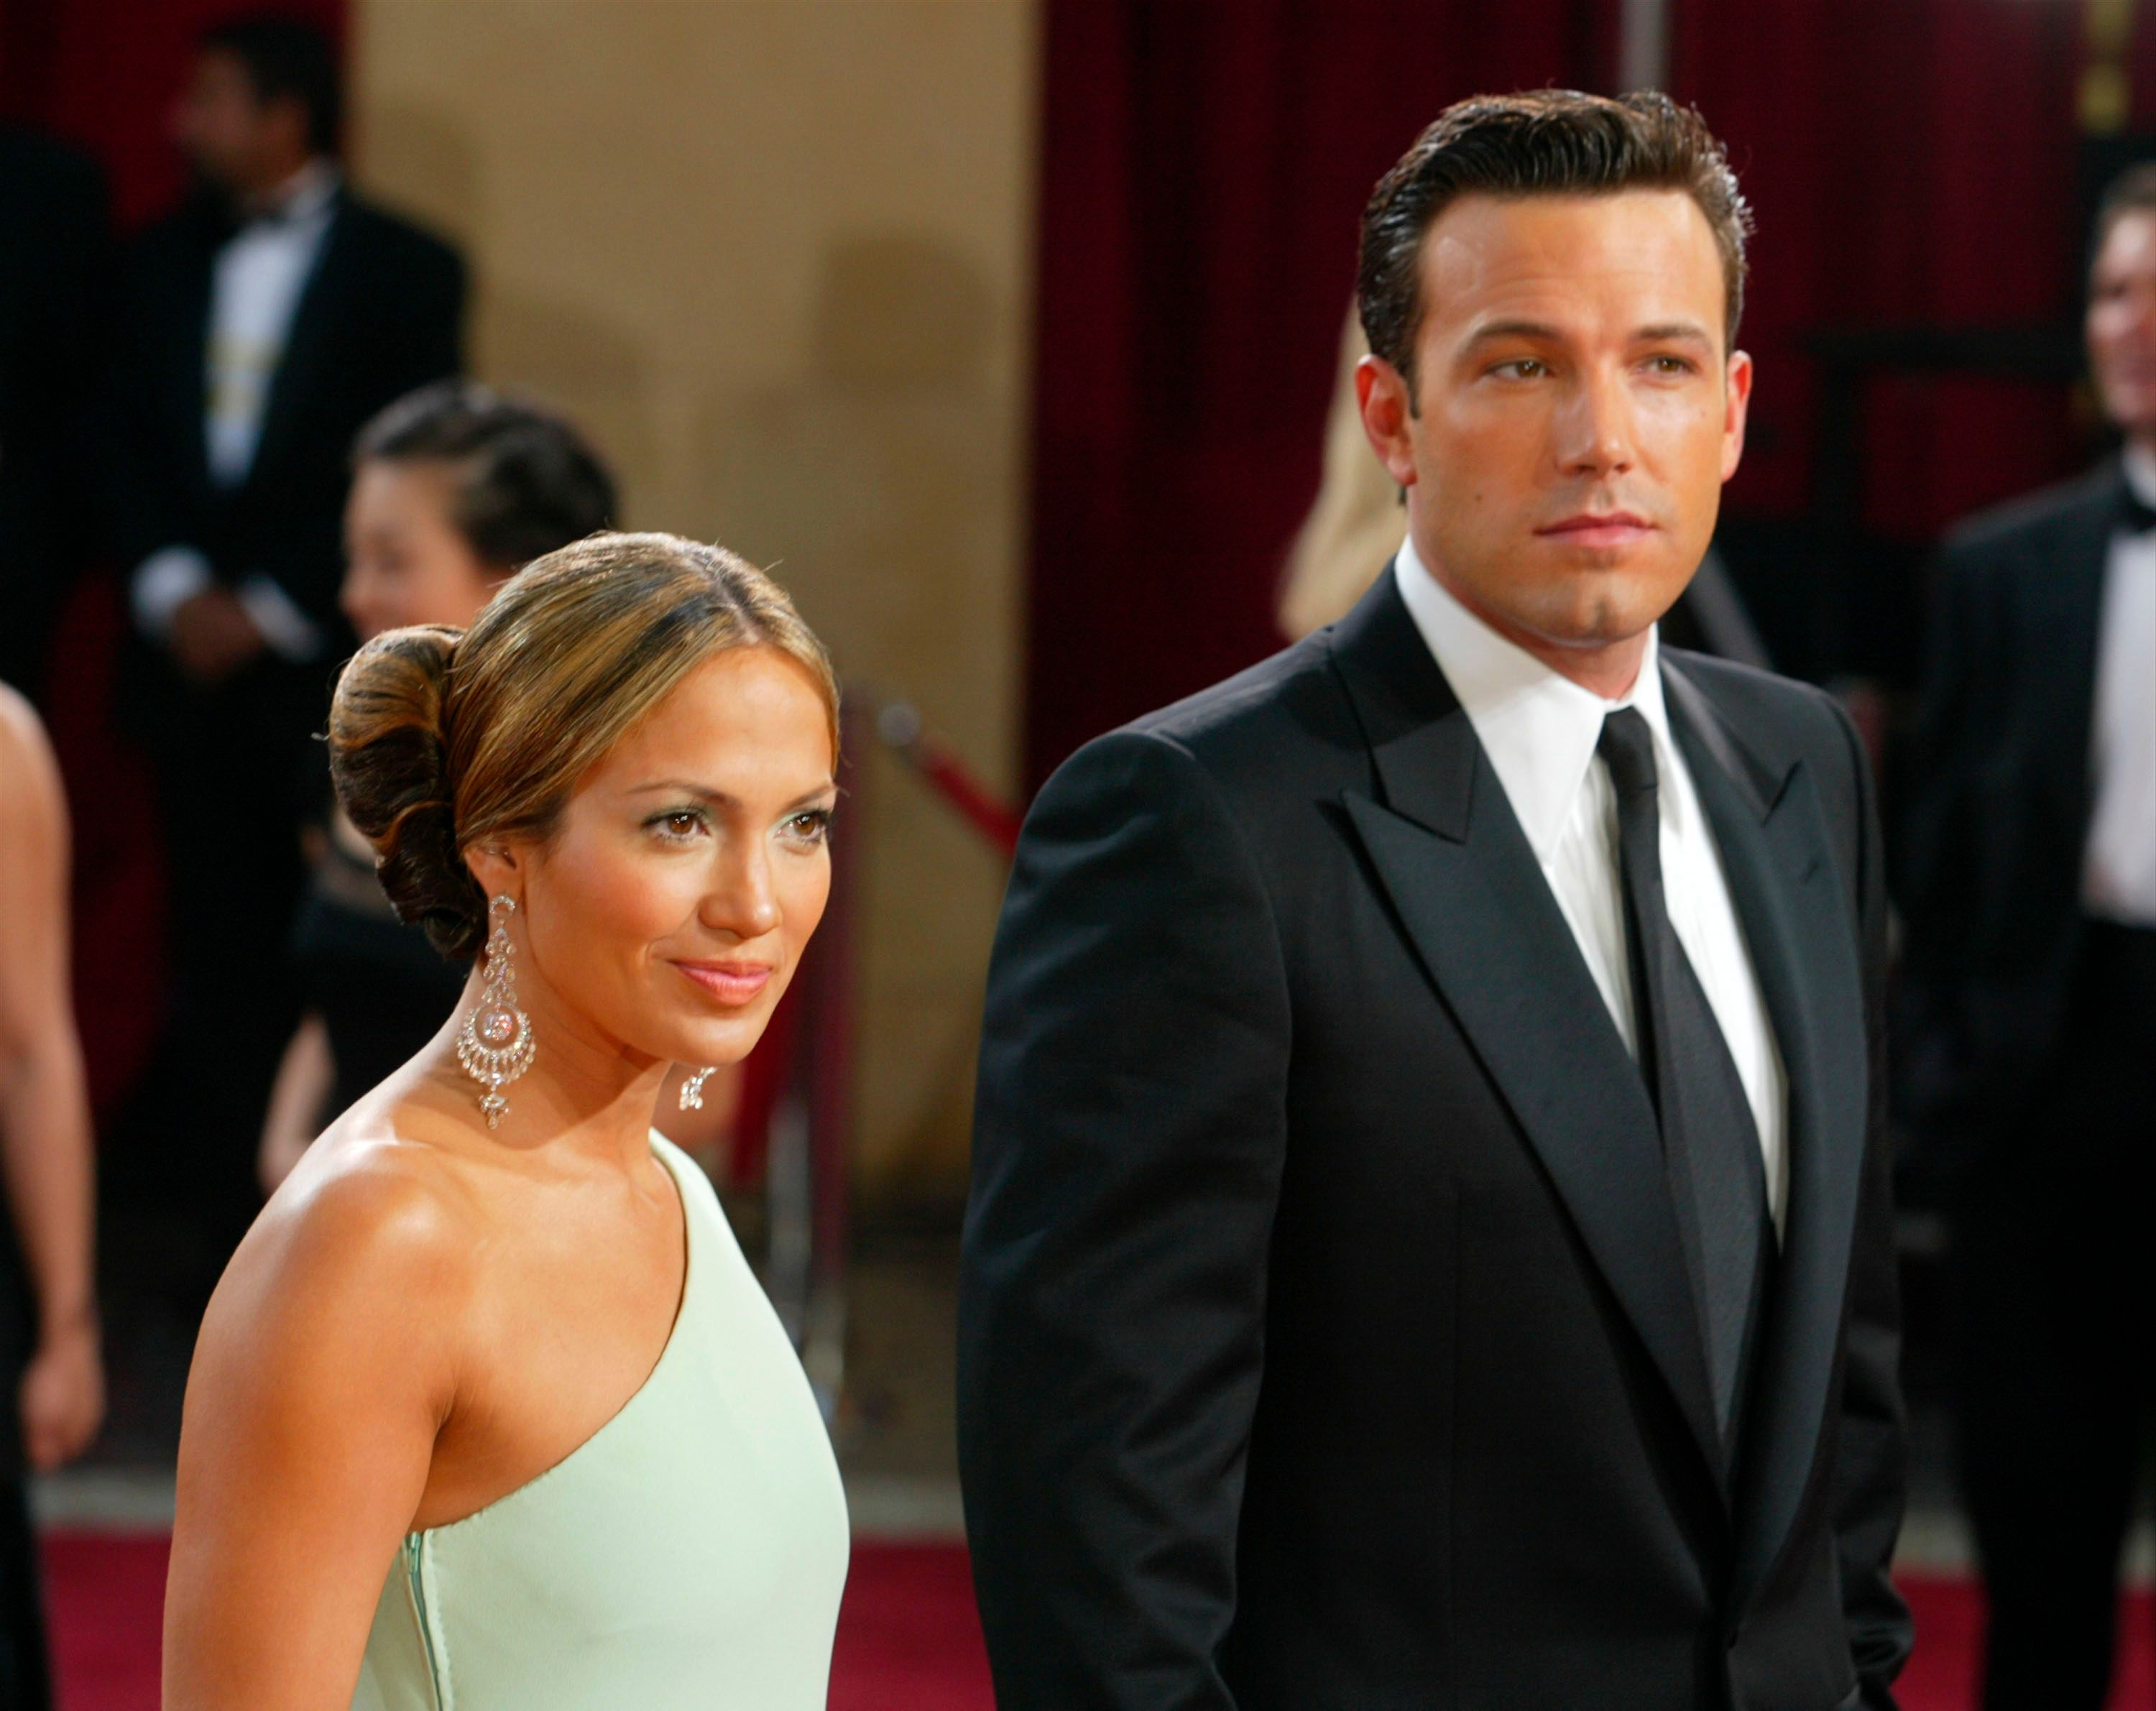 Jennifer Lopez and Ben Affleck atthe 75th Annual Academy Awards at the Kodak Theater on March 23, 2003, in Hollywood, California   Photo:Kevin Winter/Getty Images